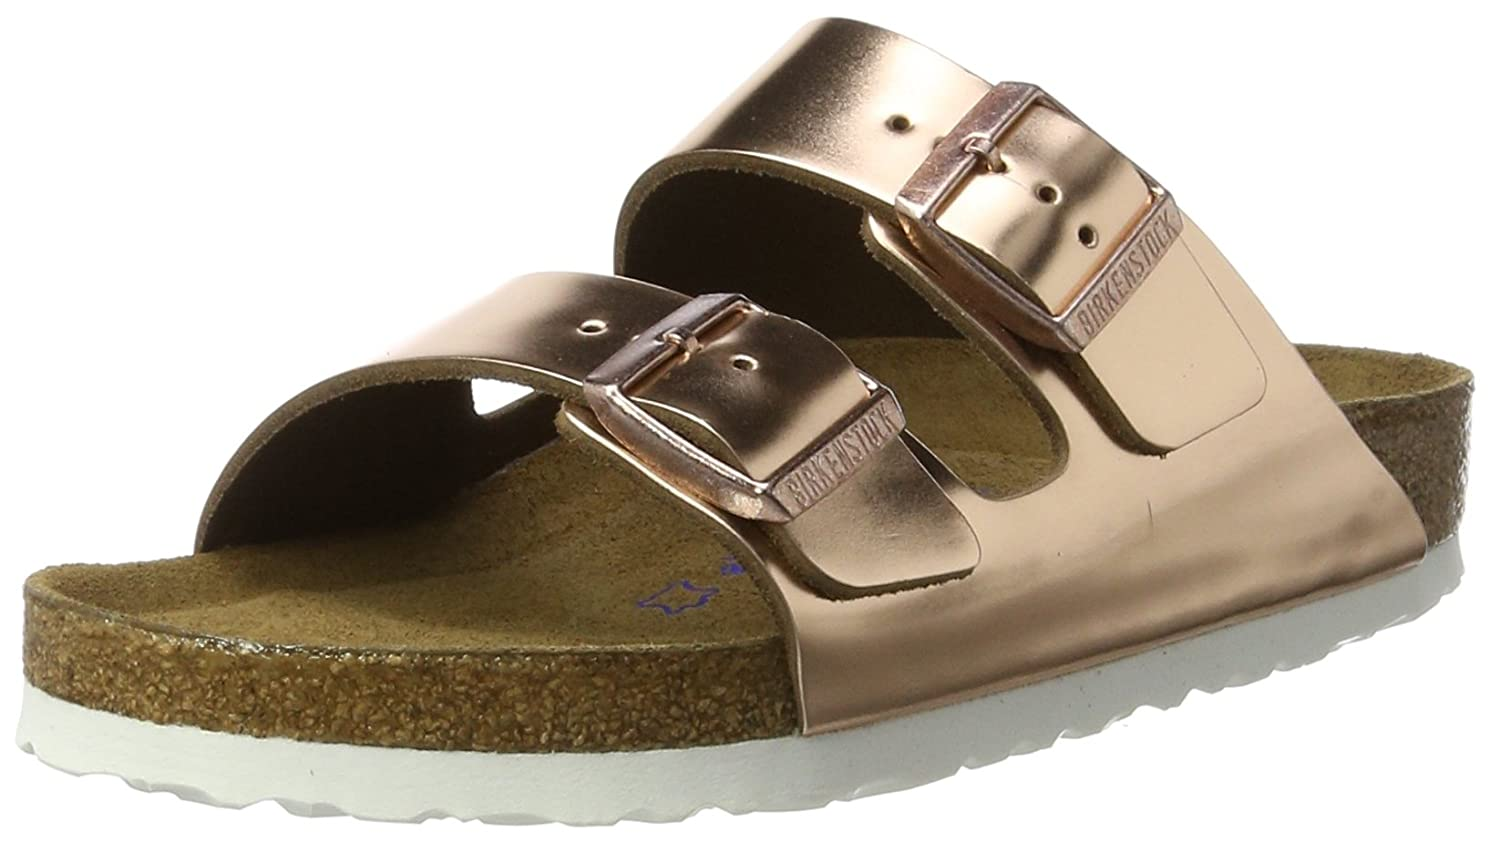 be40f02e3b35 Birkenstock Arizona Natural Leather Soft Footbed Womens Sandals Metallic  Copper  Amazon.com.au  Fashion